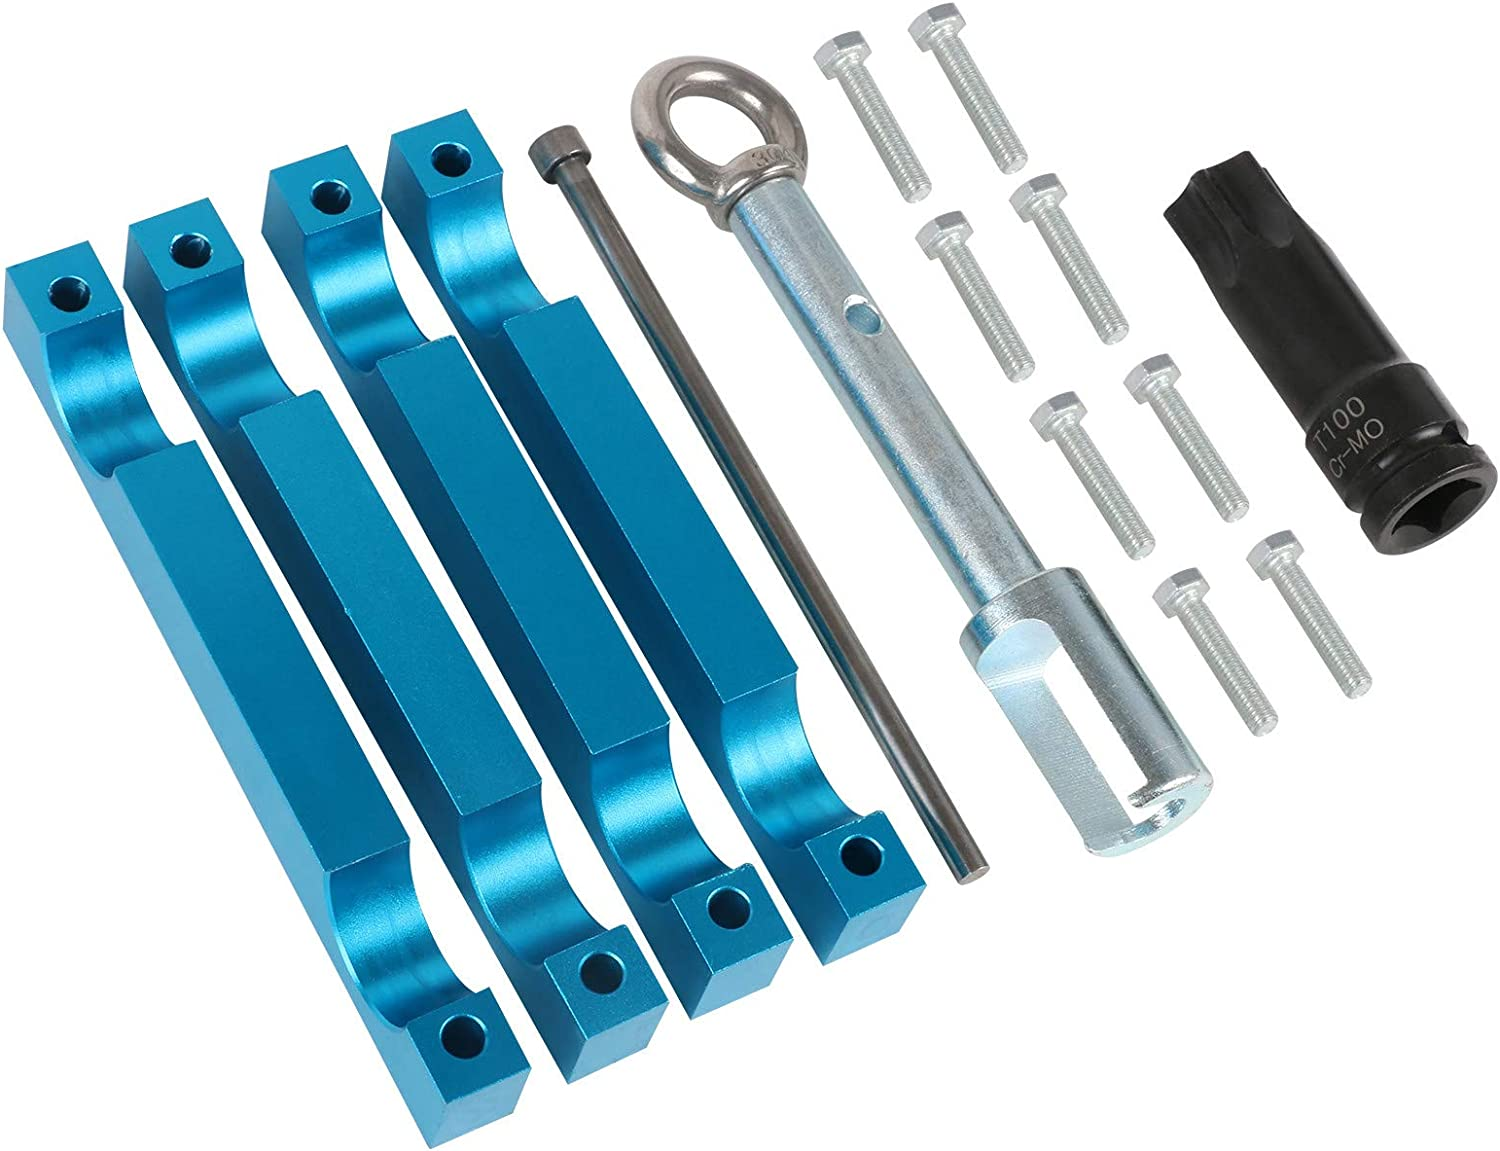 Camshaft Timing Alignment Tools For Mercedes Benz M157 M276 M278 with T100 /& Injector Removal Puller Tool